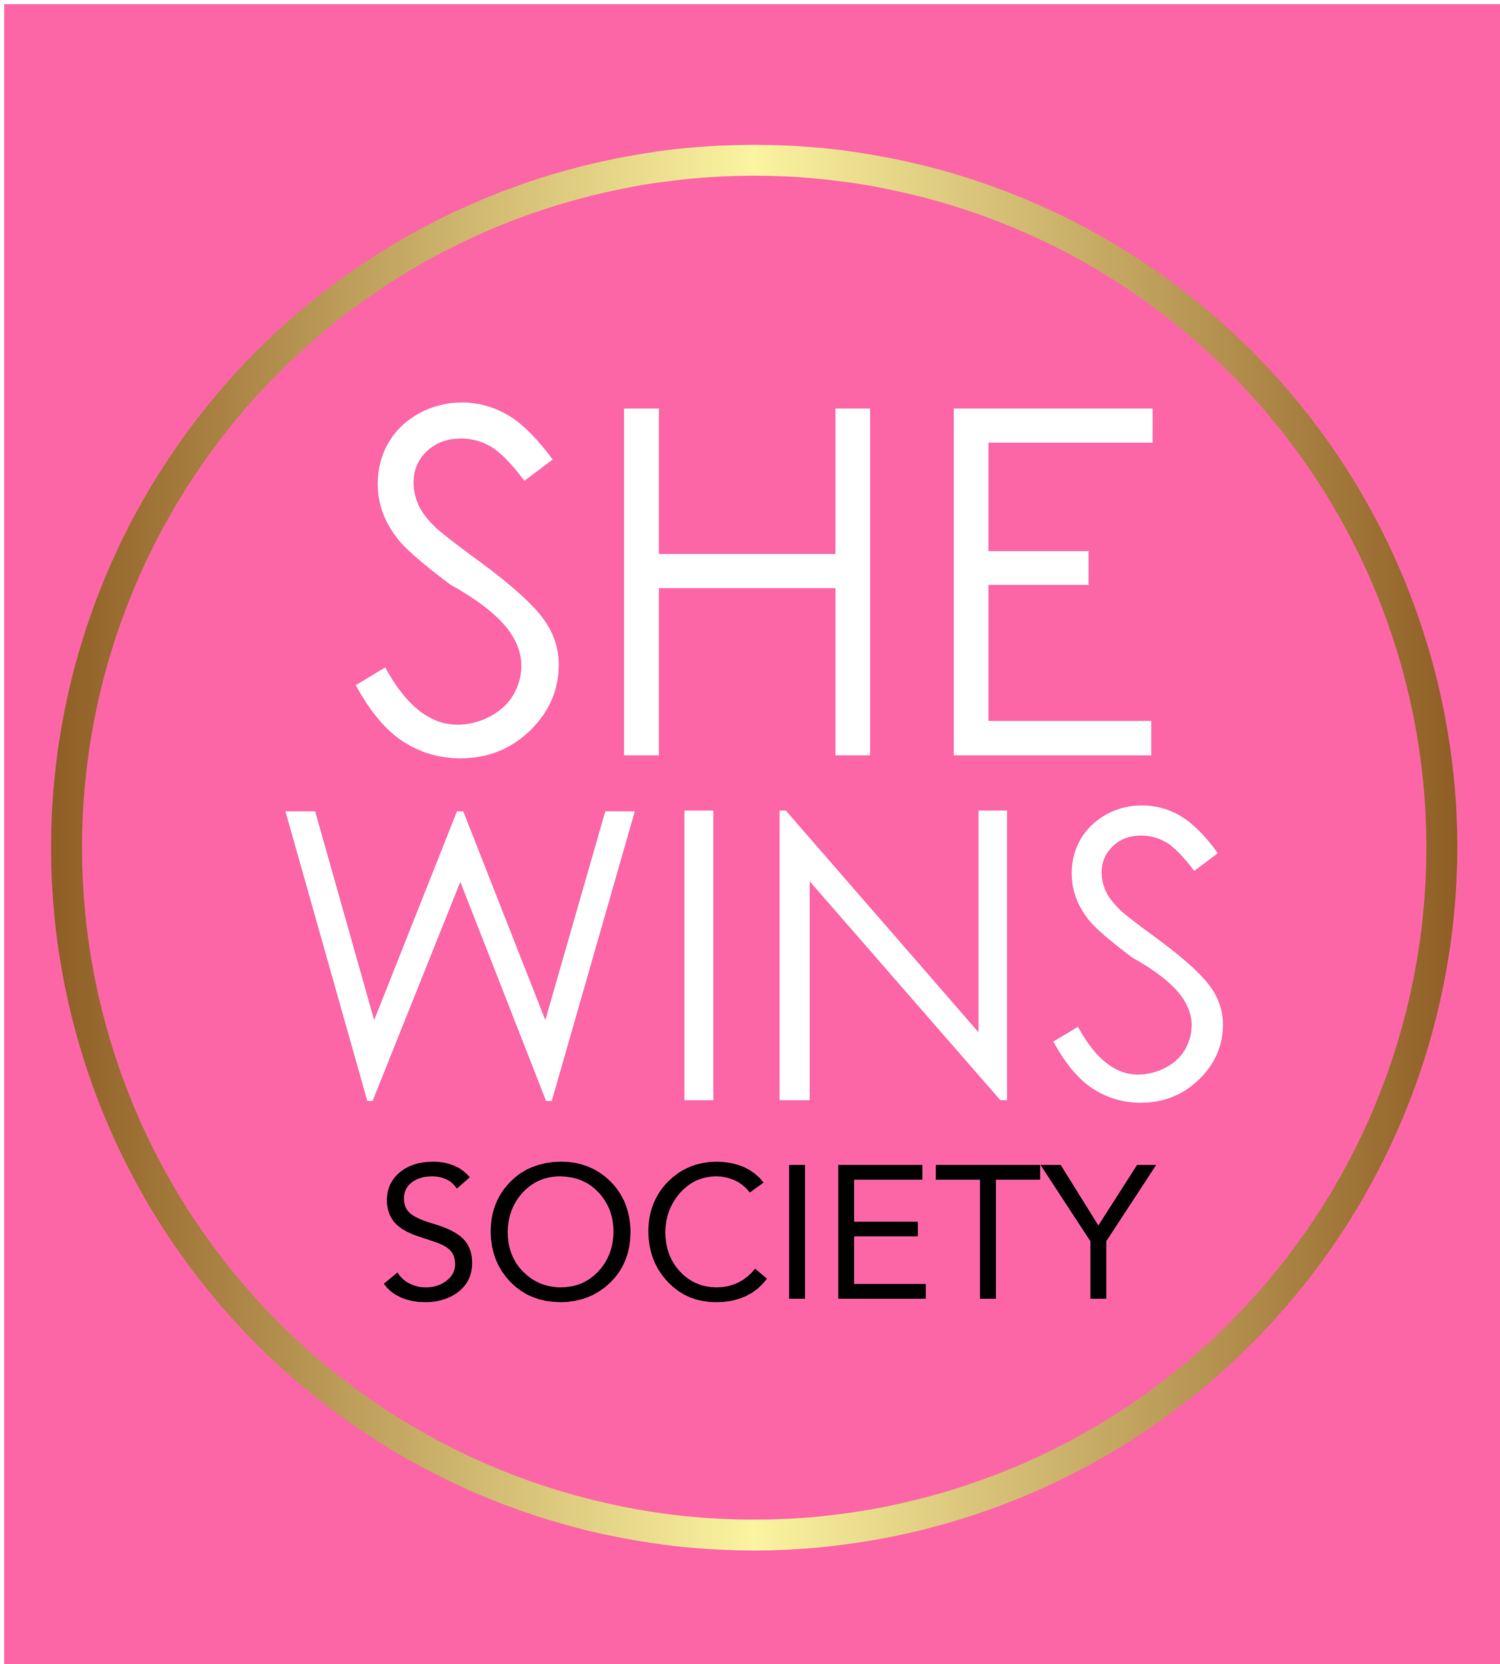 She Wins Society